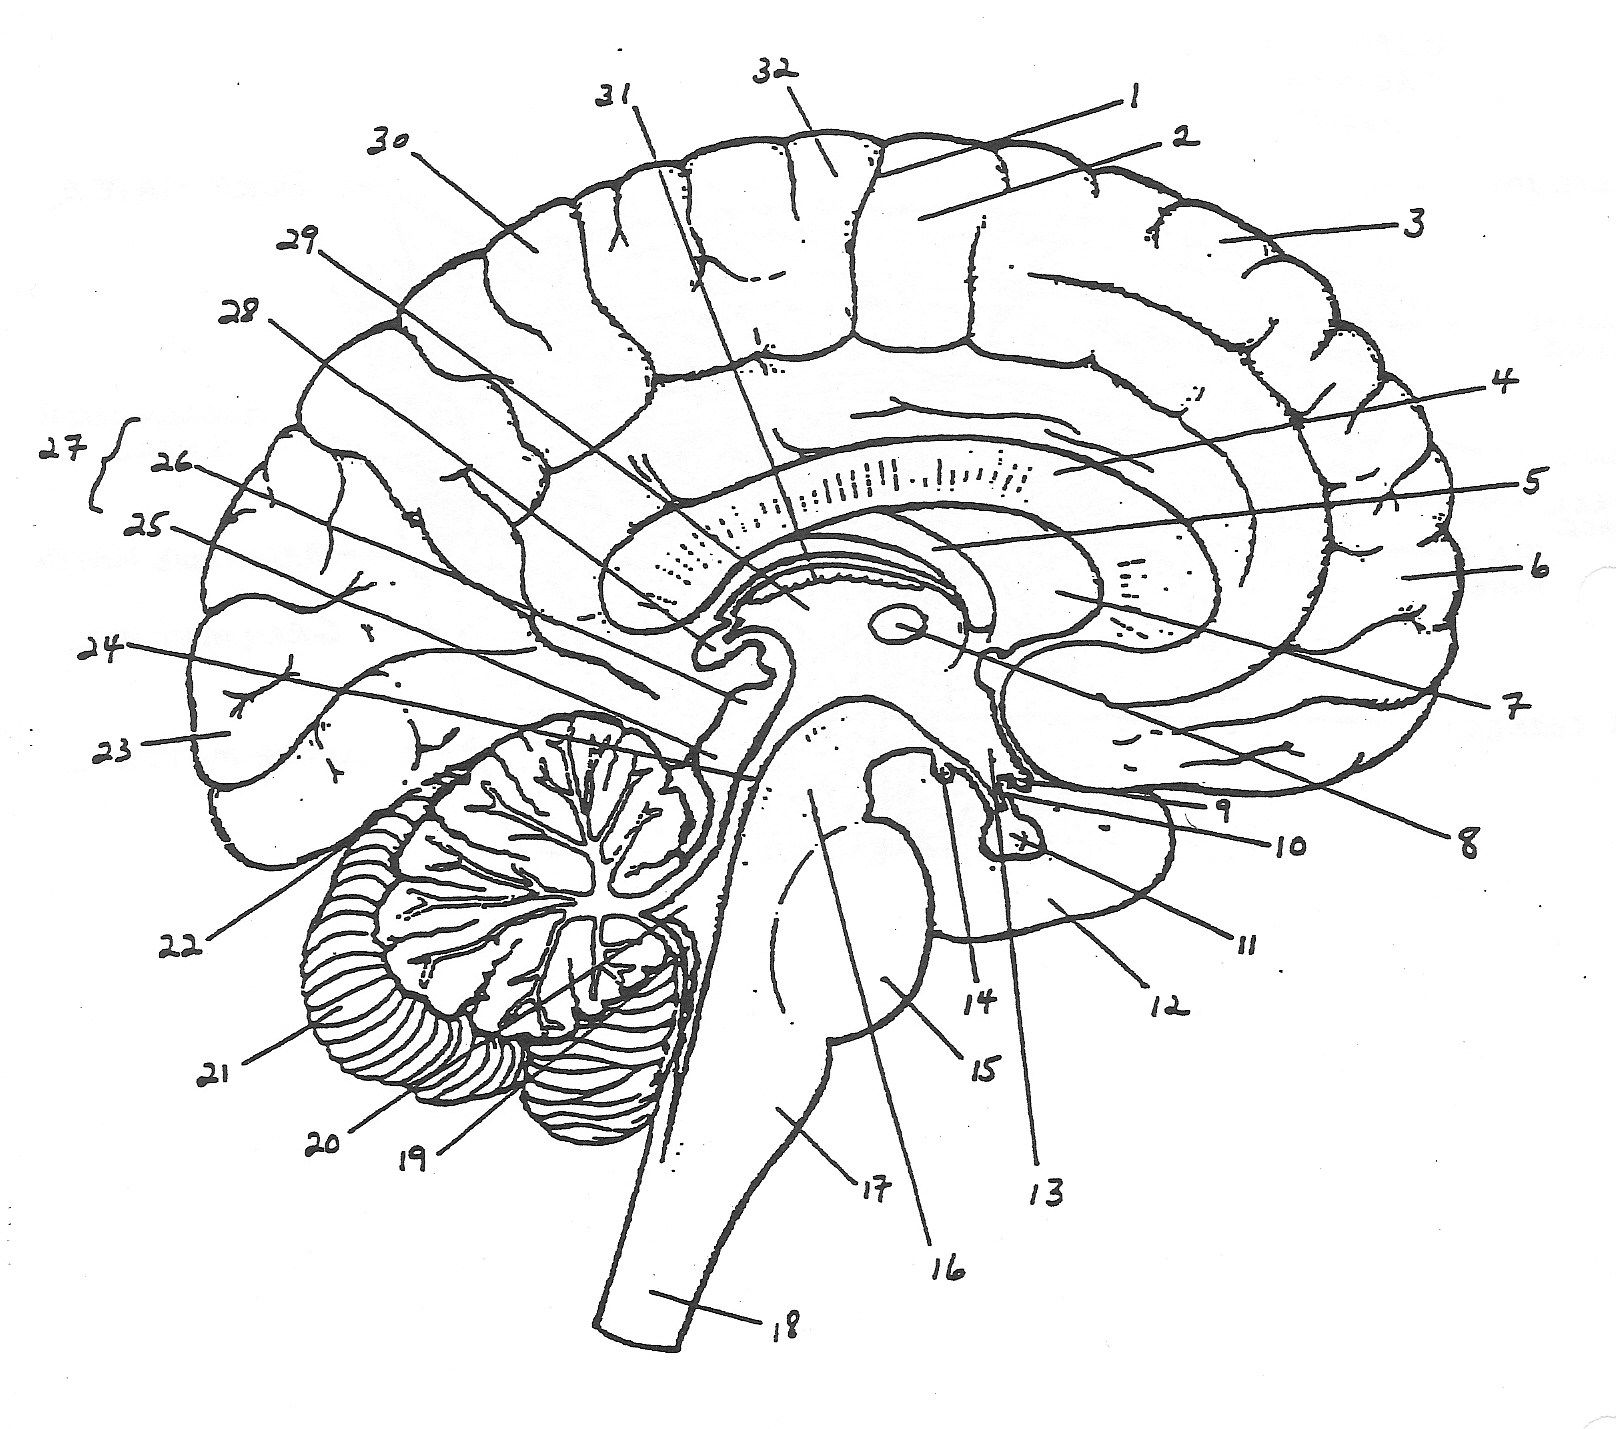 Blank Brain Diagram Blank Brain Diagram Blank Diagram Of The Brain Anatomy Body Diagram